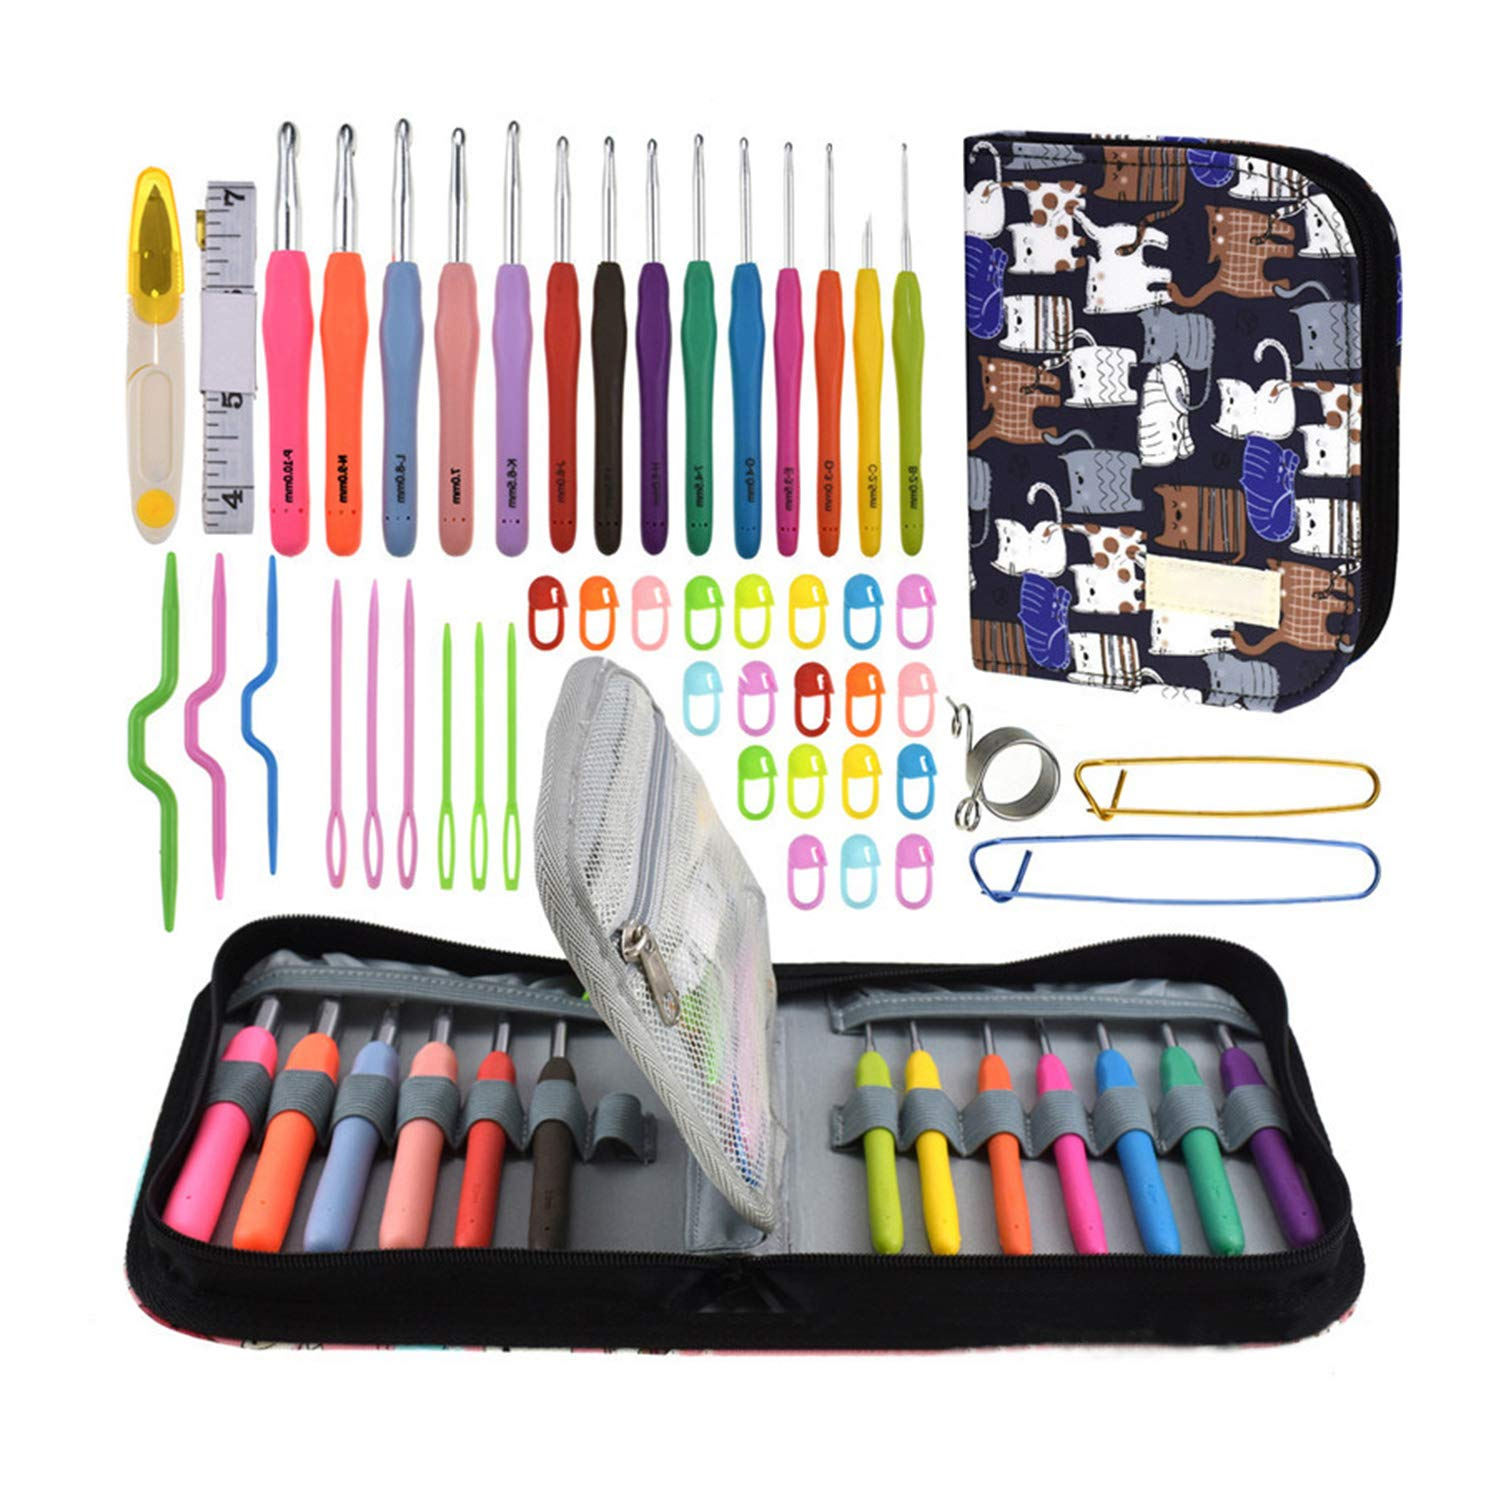 LULUFUN 49 Pcs Aluminum Crochet Hooks Kit with Portable Canvas Storage Bag Including All Basic Crochet Accessories Ideal Gift for Mom Grandma Girlfriend (Black)